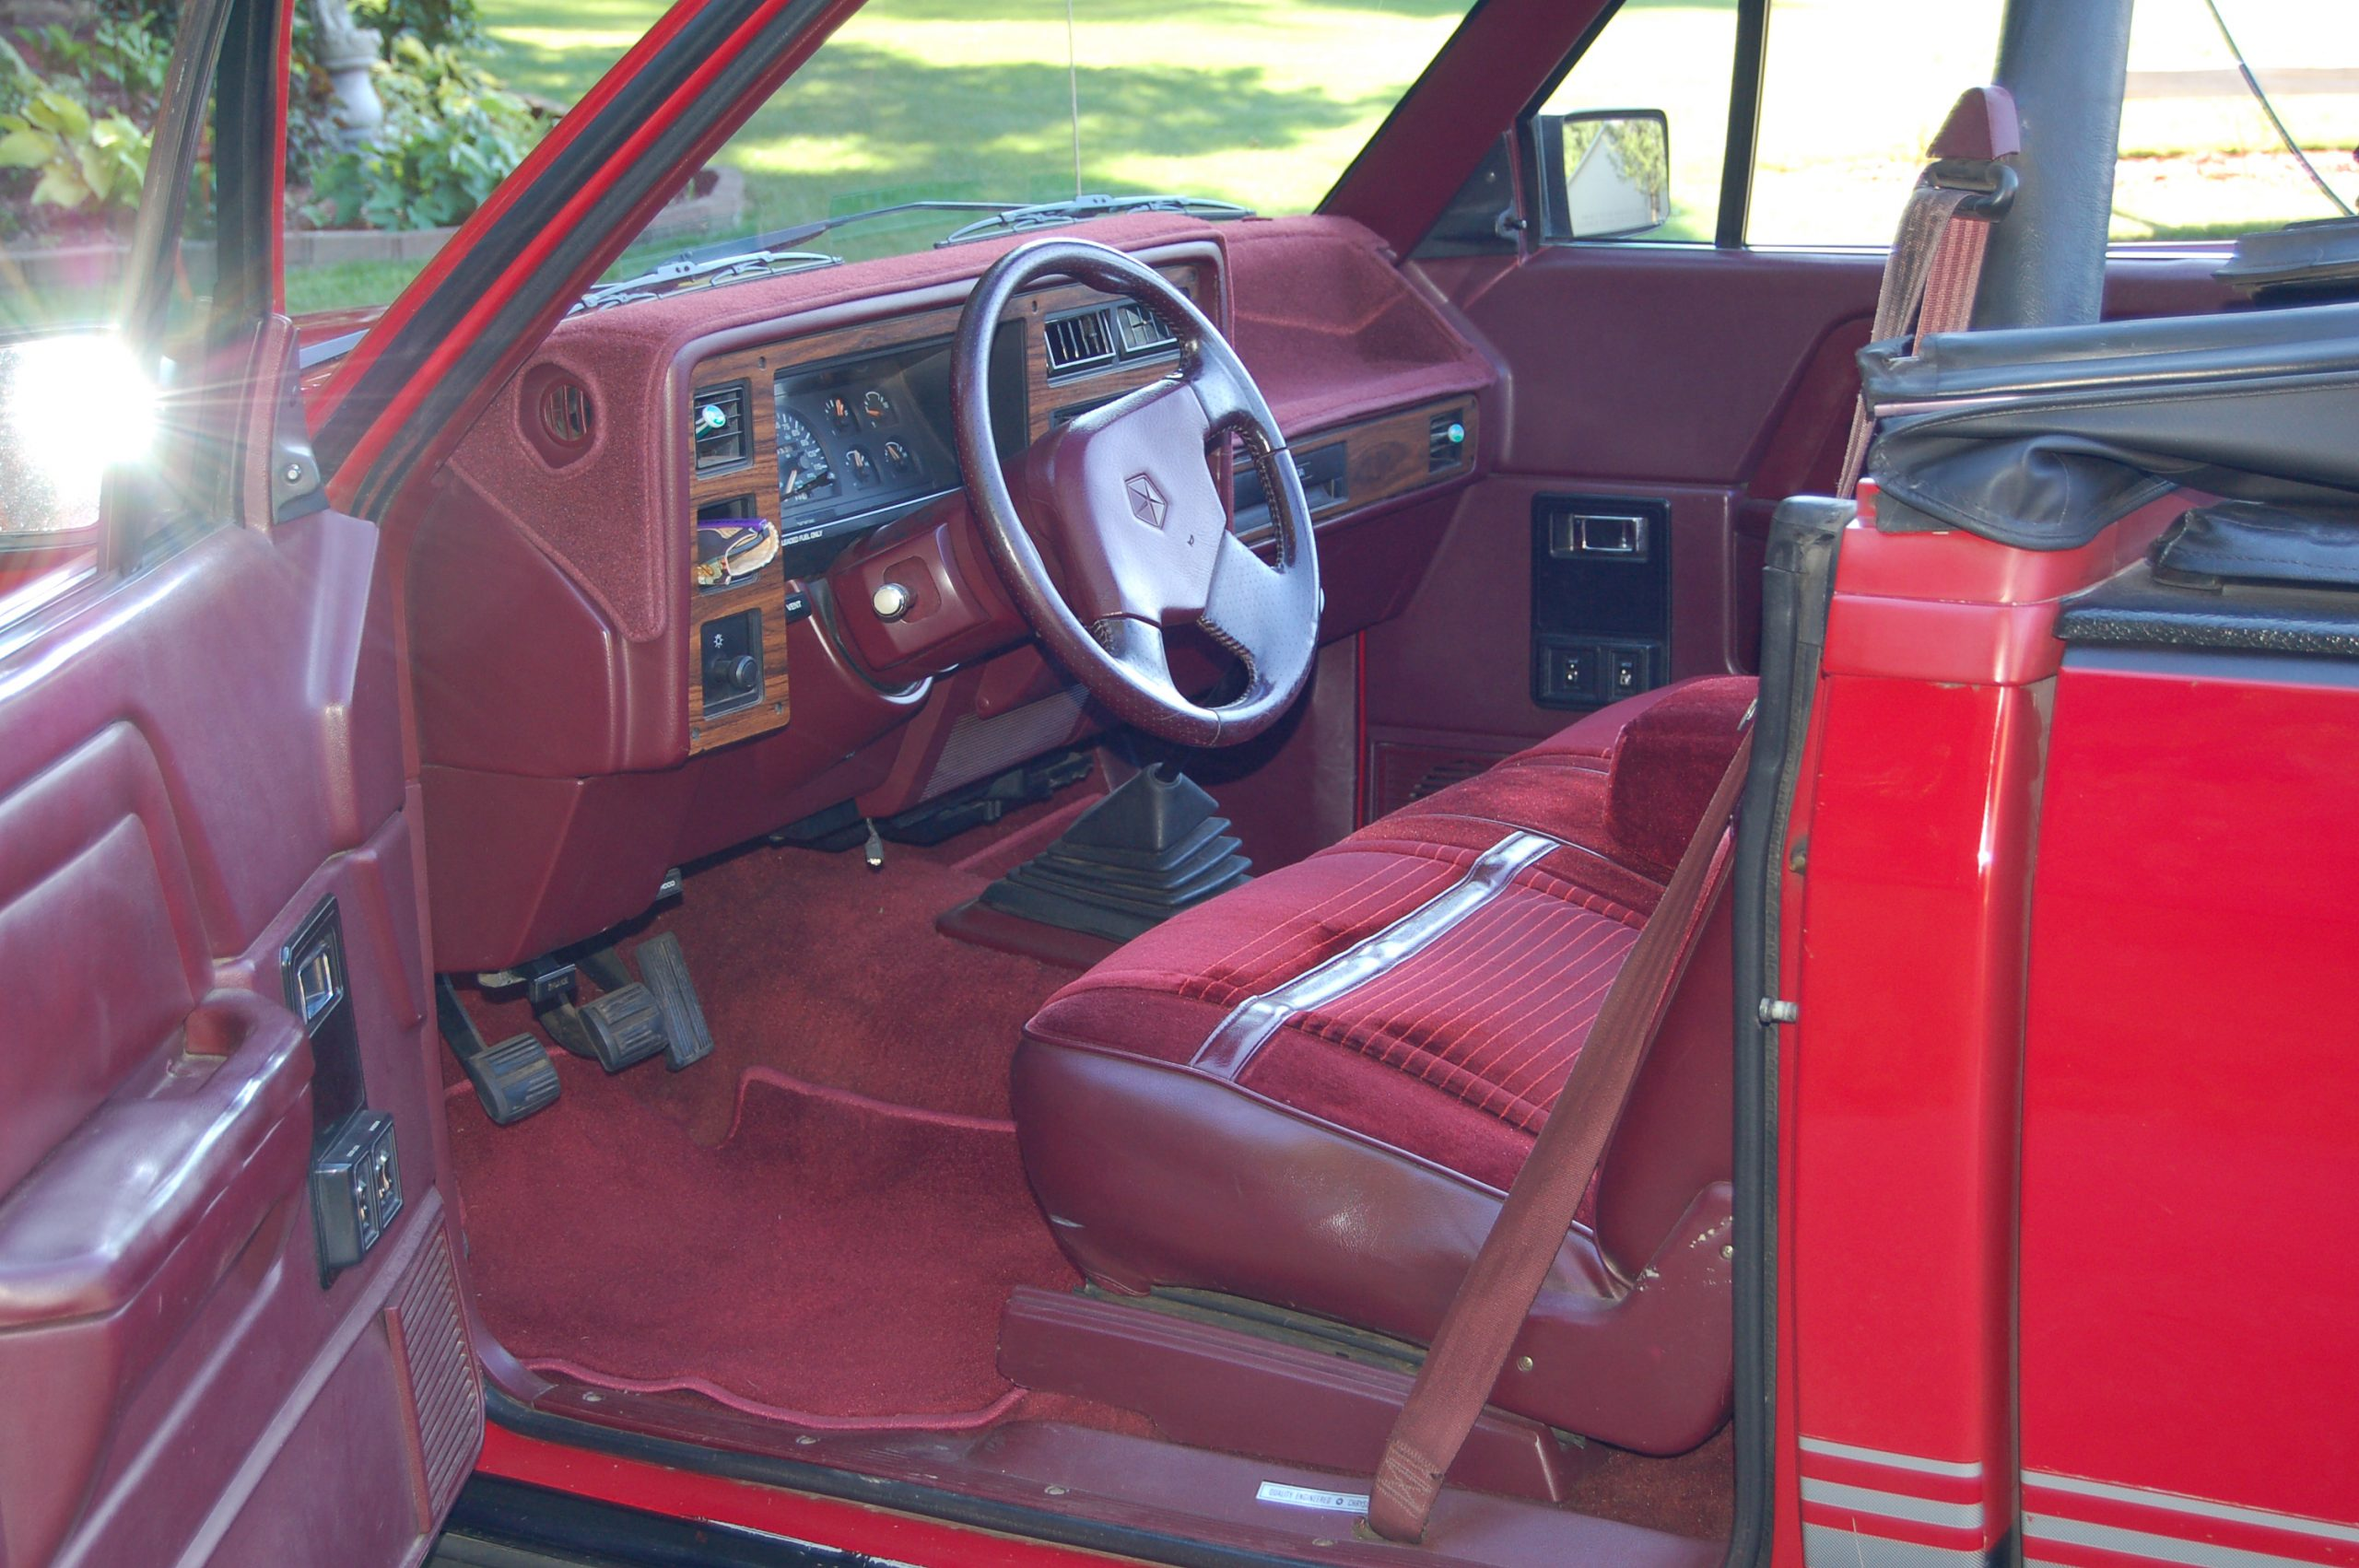 1989 Dodge Dakota Sport Convertible interior driver's side